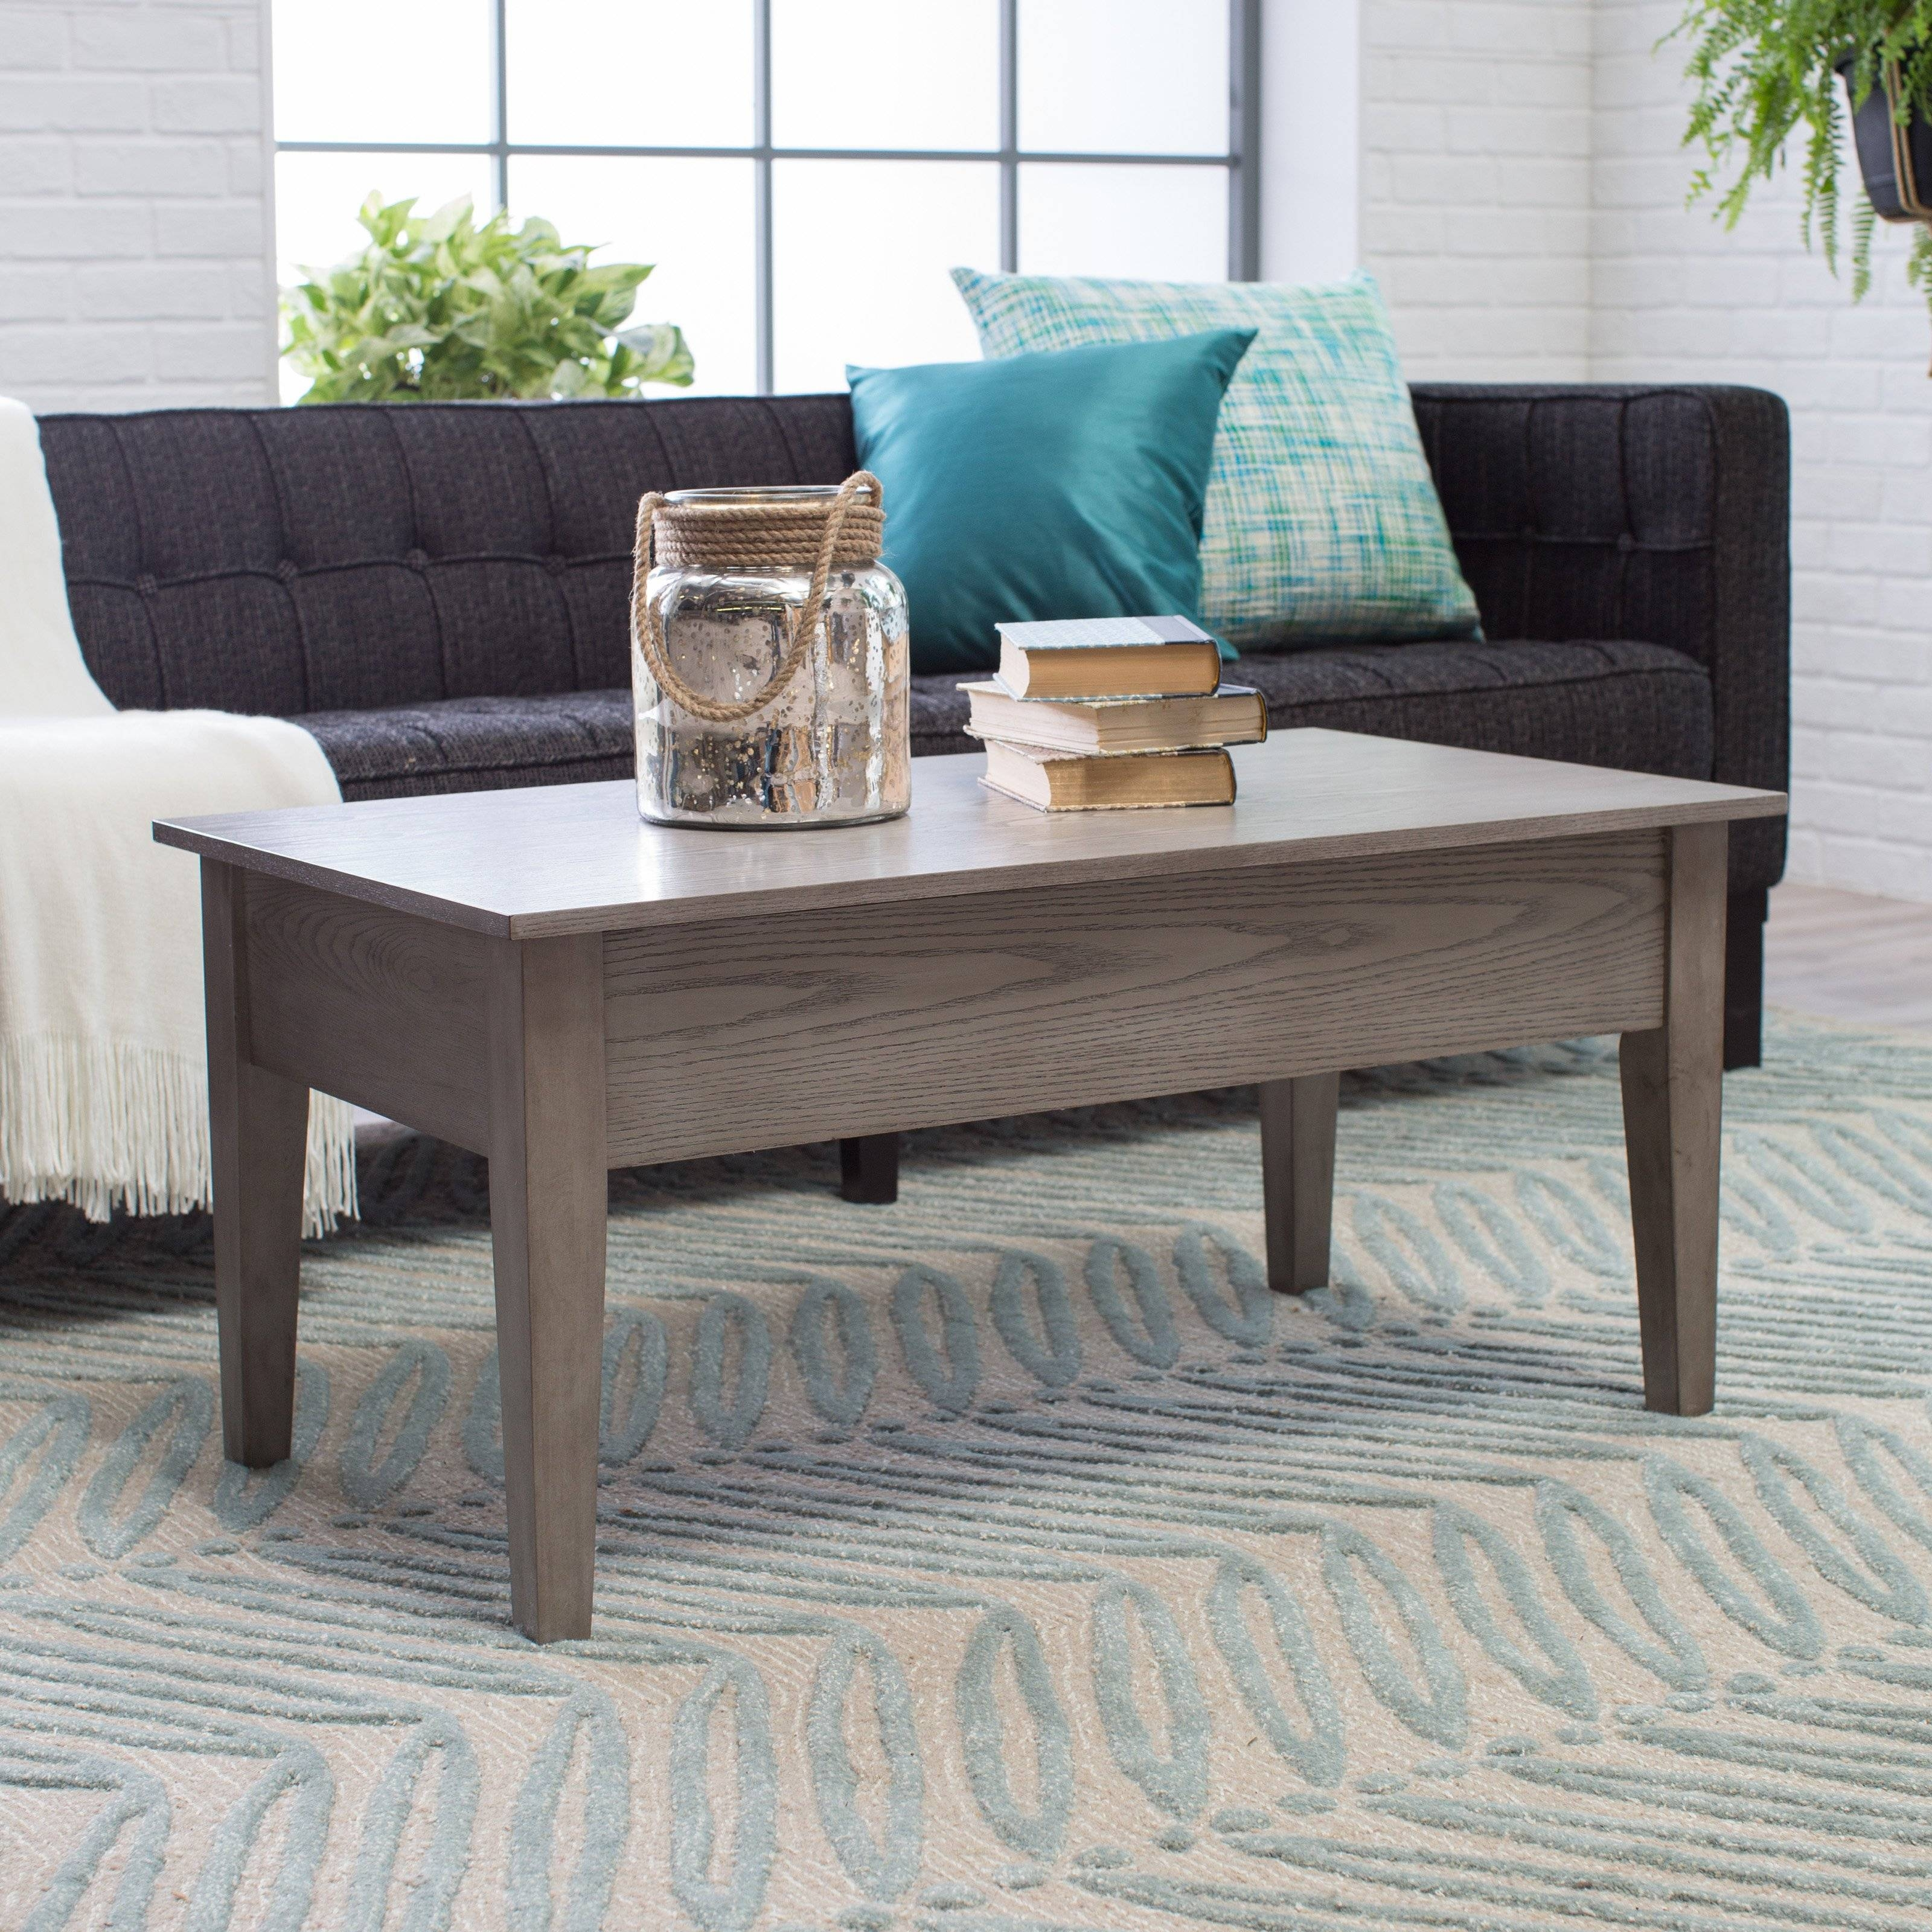 Turner Lift Top Coffee Table - Gray | Hayneedle for Lift Top Coffee Tables (Image 28 of 30)